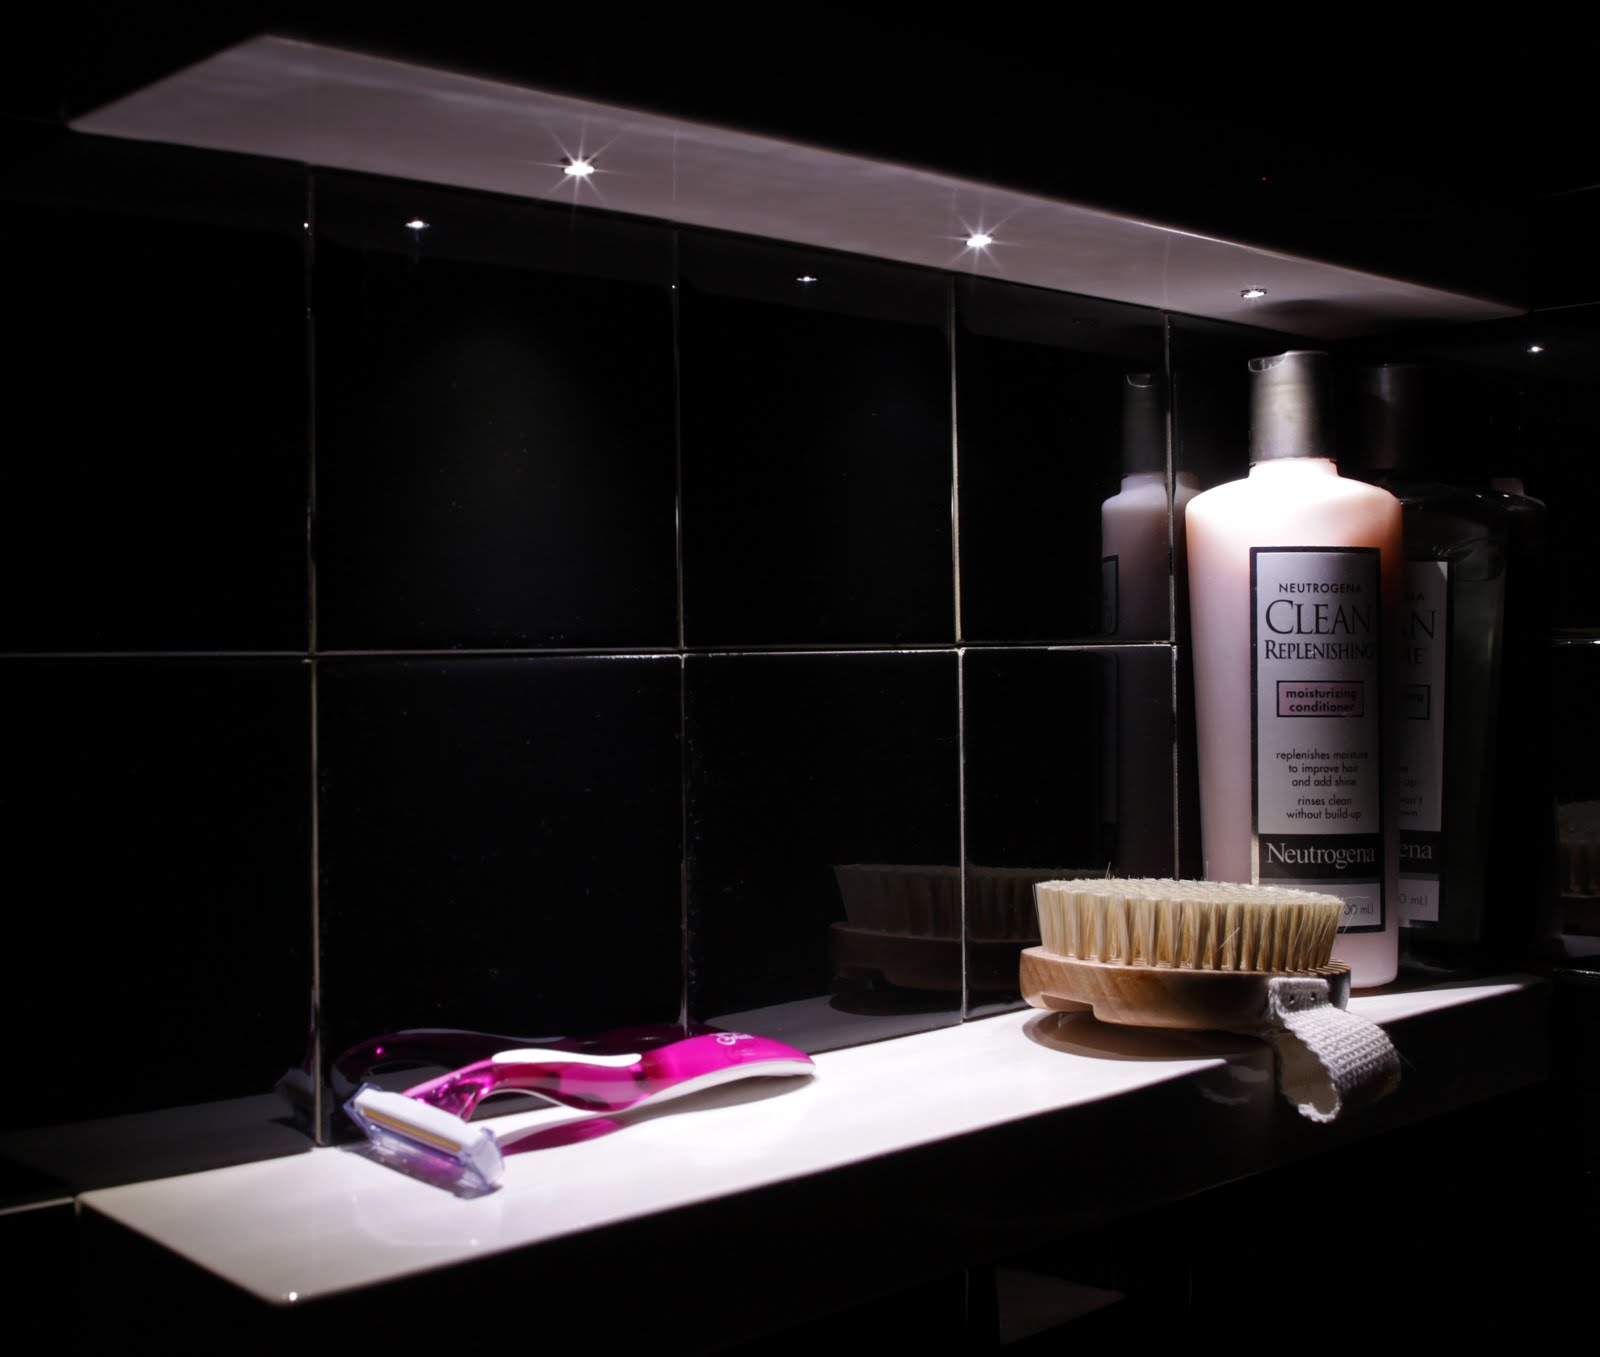 Bathroom shower lights - This Picture Below Is With Larger Shampoo Bottles And 3 4 1 4 Tiles In Between Click On The Picture For Larger Size We Can Mount Led Lighting In Any Of